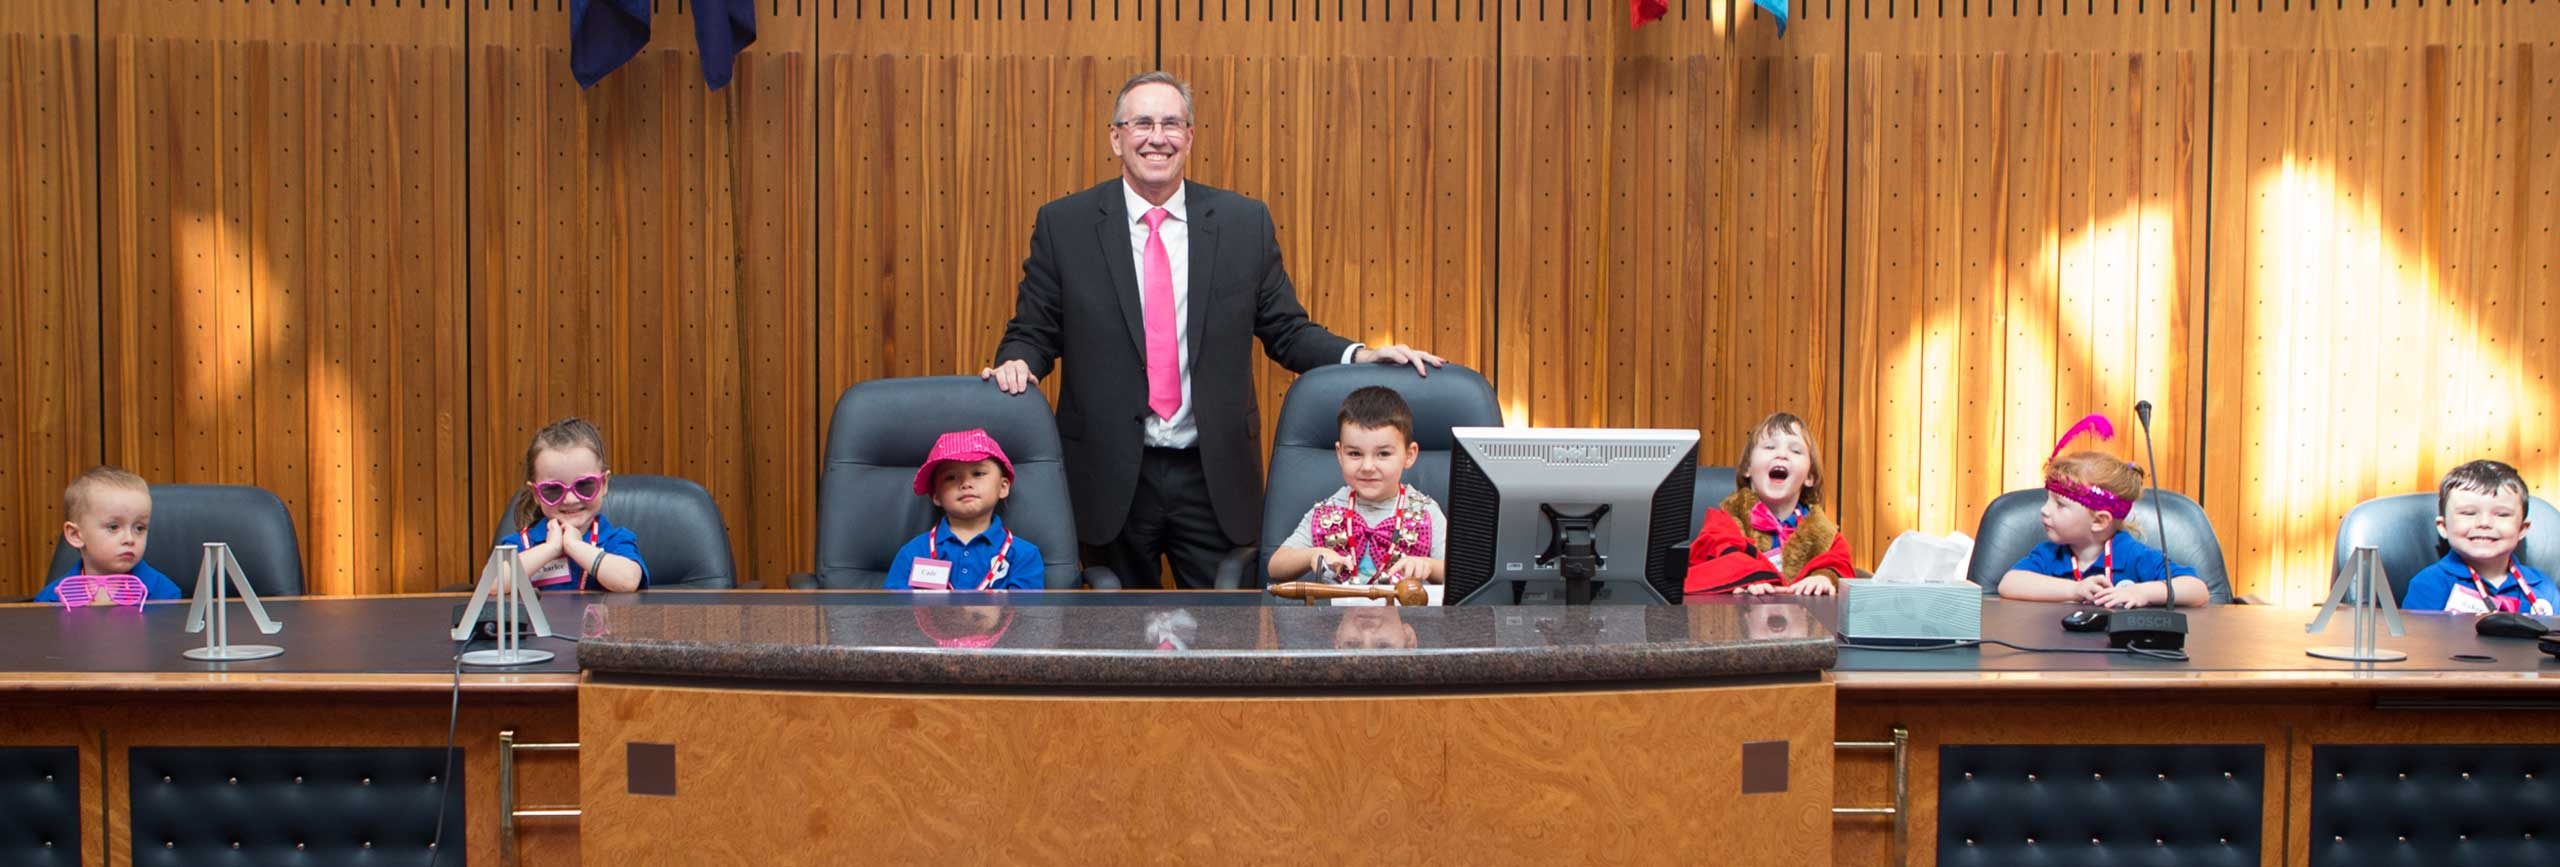 General Manager Warwick Winn (centre) in the Council Chambers with the children from Cook Parade Children's Centre, St Clair